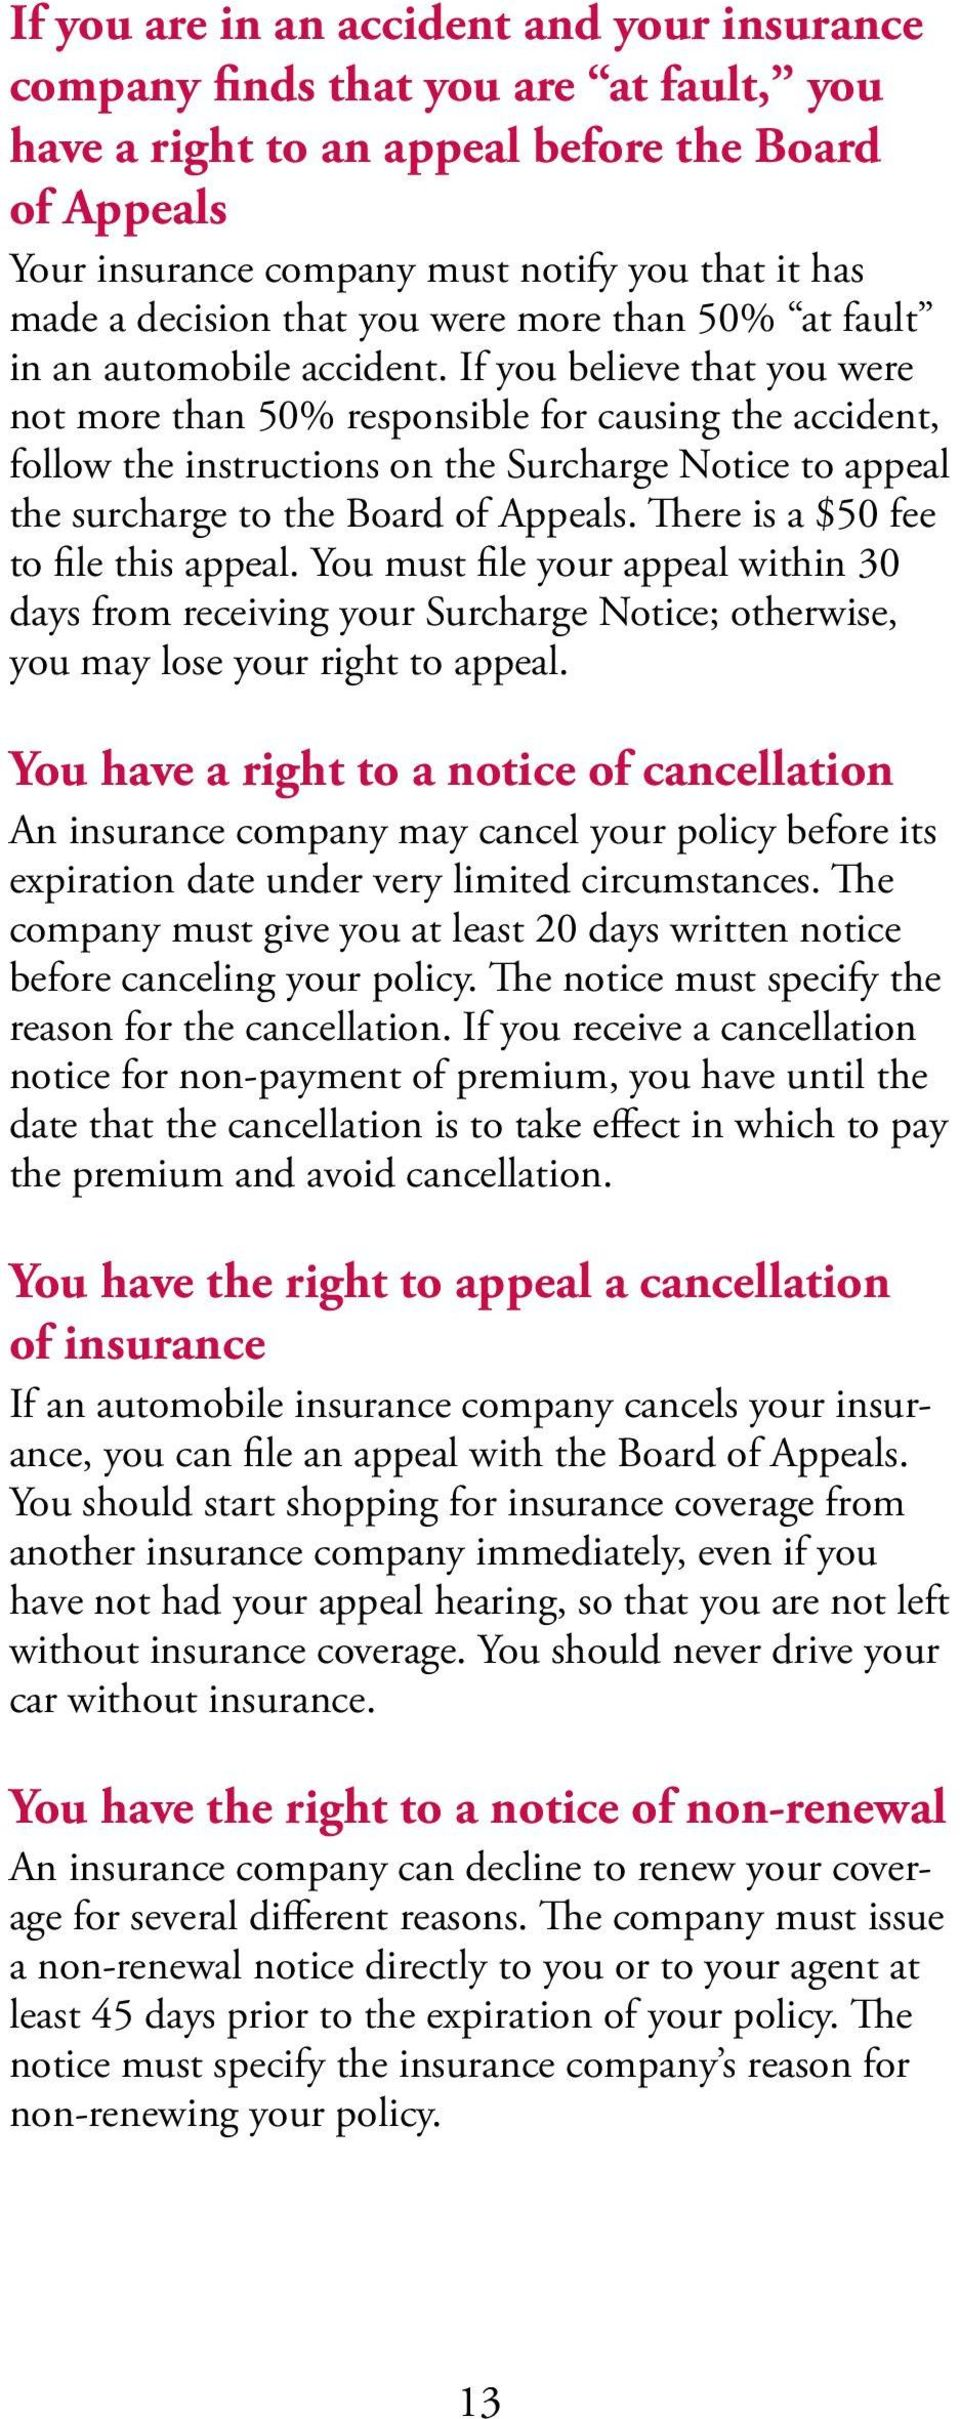 If you believe that you were not more than 50% responsible for causing the accident, follow the instructions on the Surcharge Notice to appeal the surcharge to the Board of Appeals.